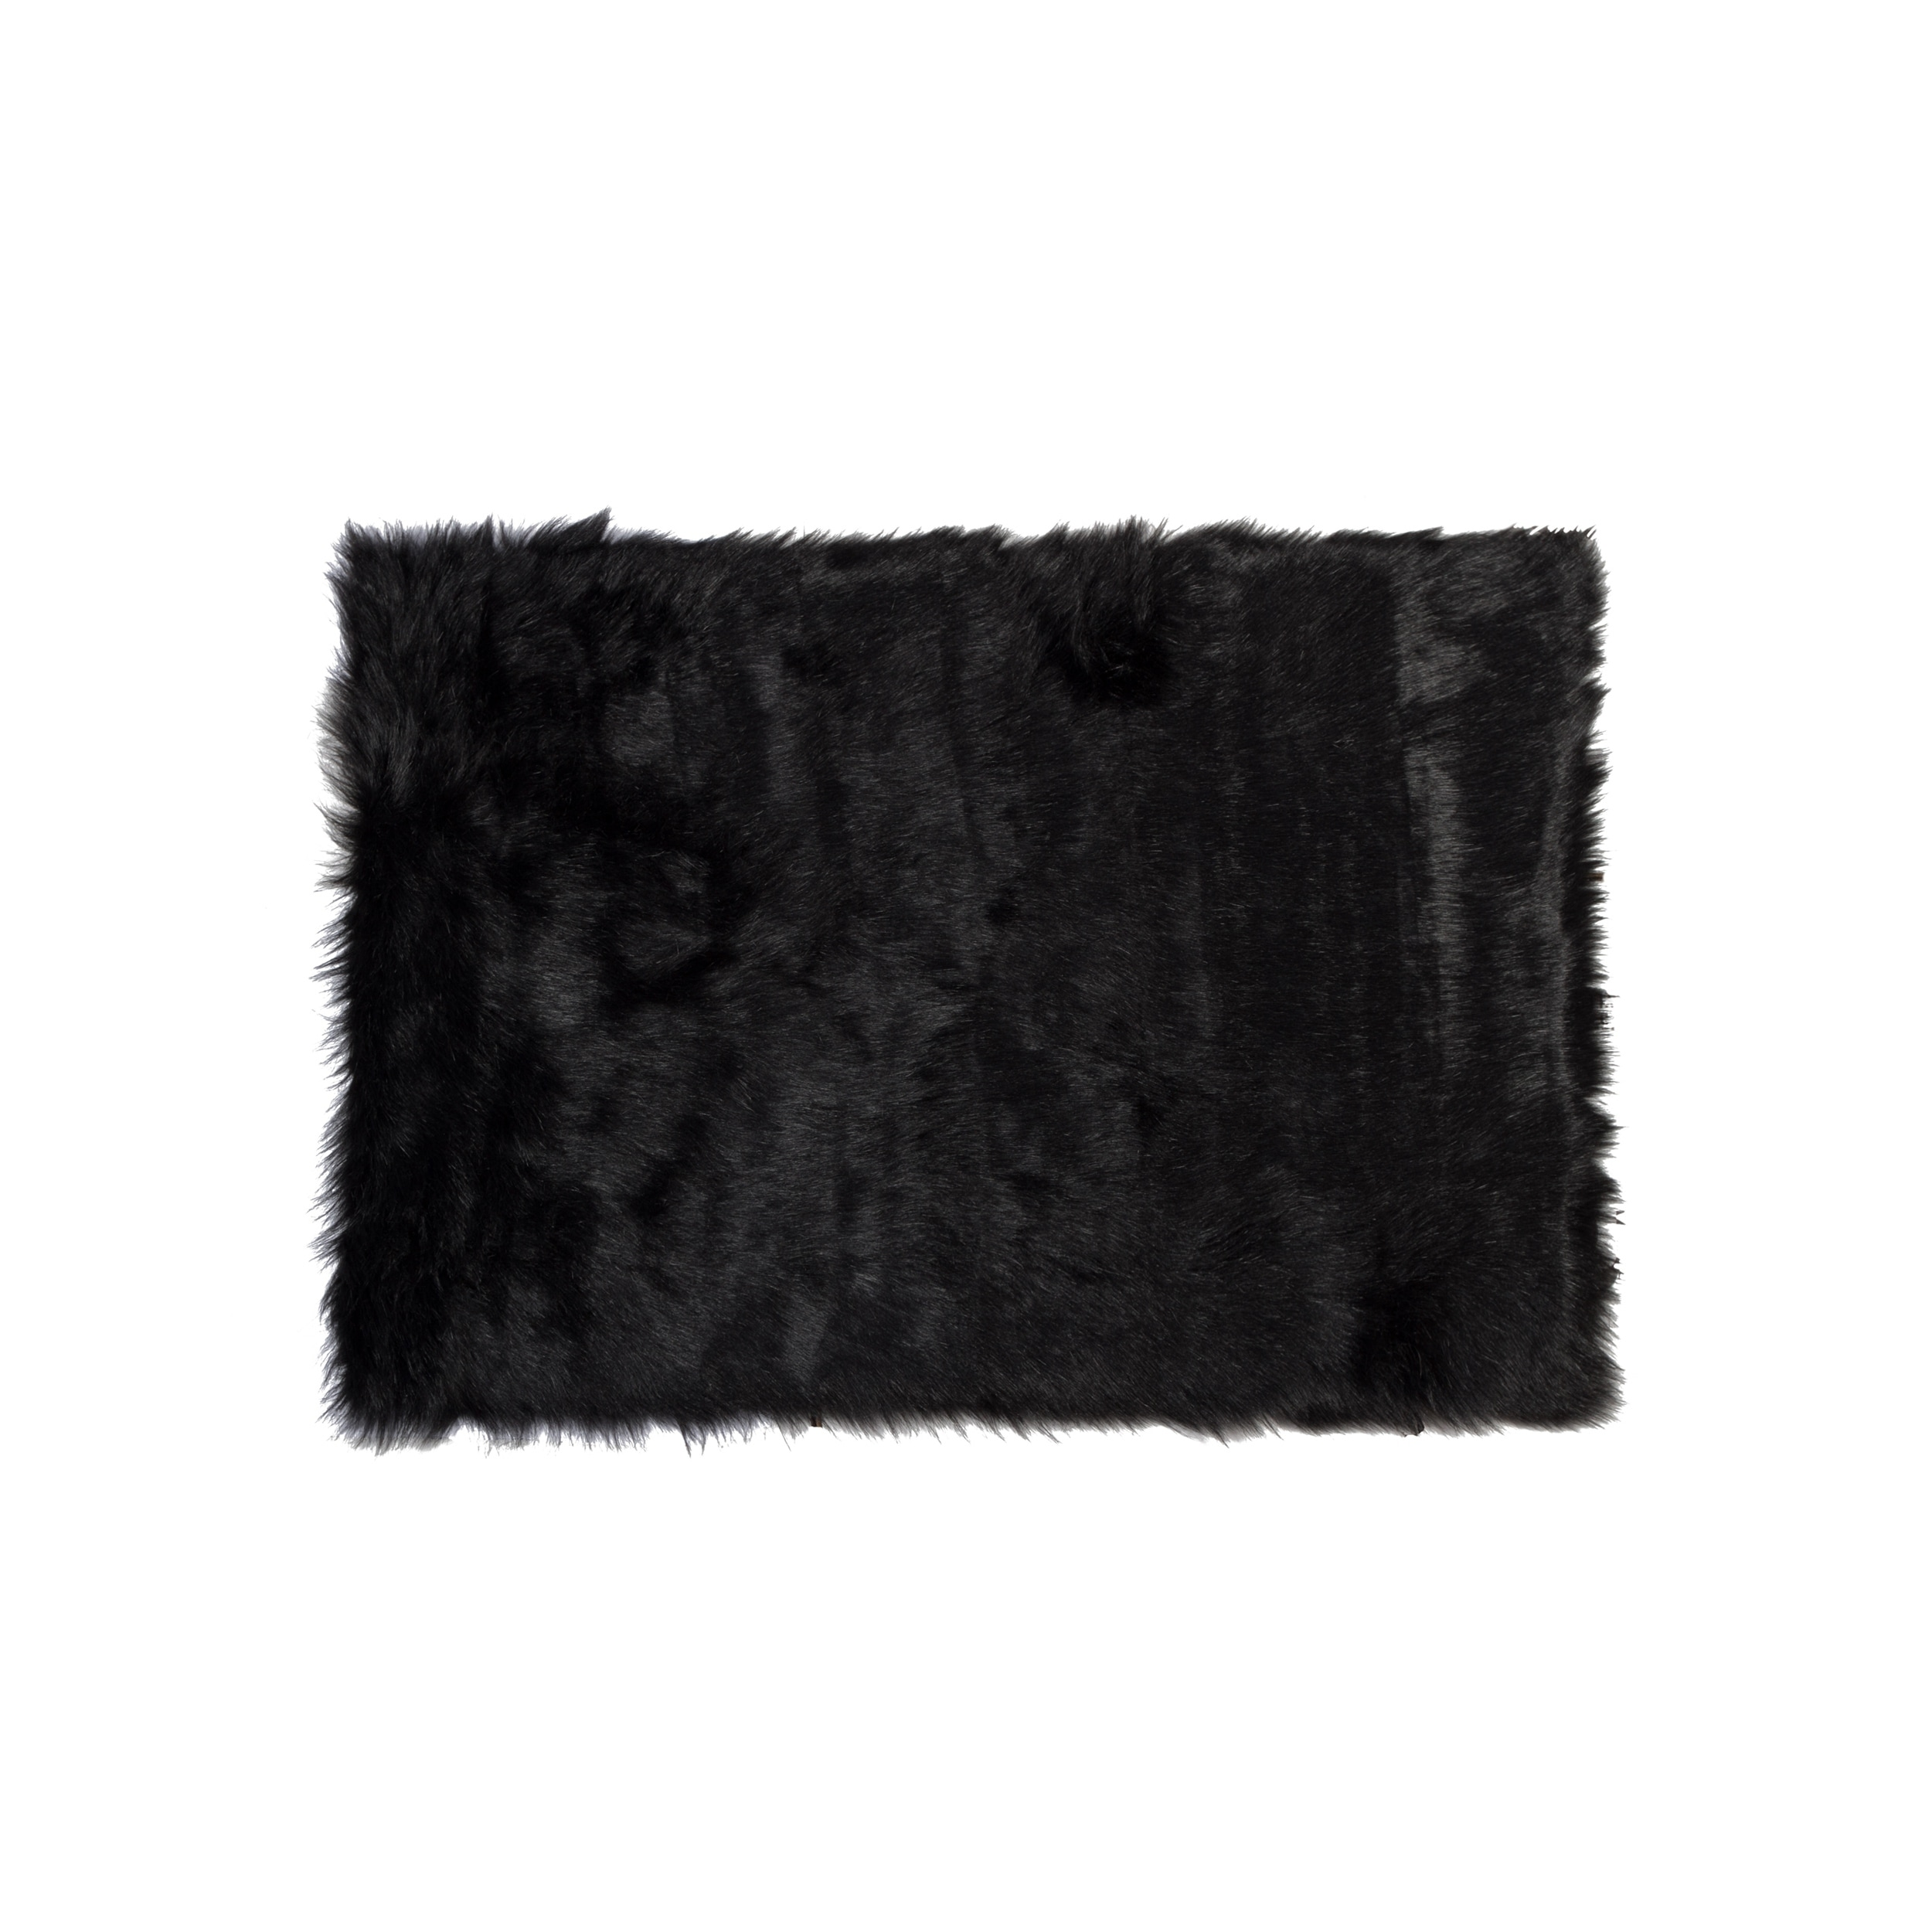 Luxe Hudson Black Faux Sheepskin Throw Rug 3 X 5 3 X 5